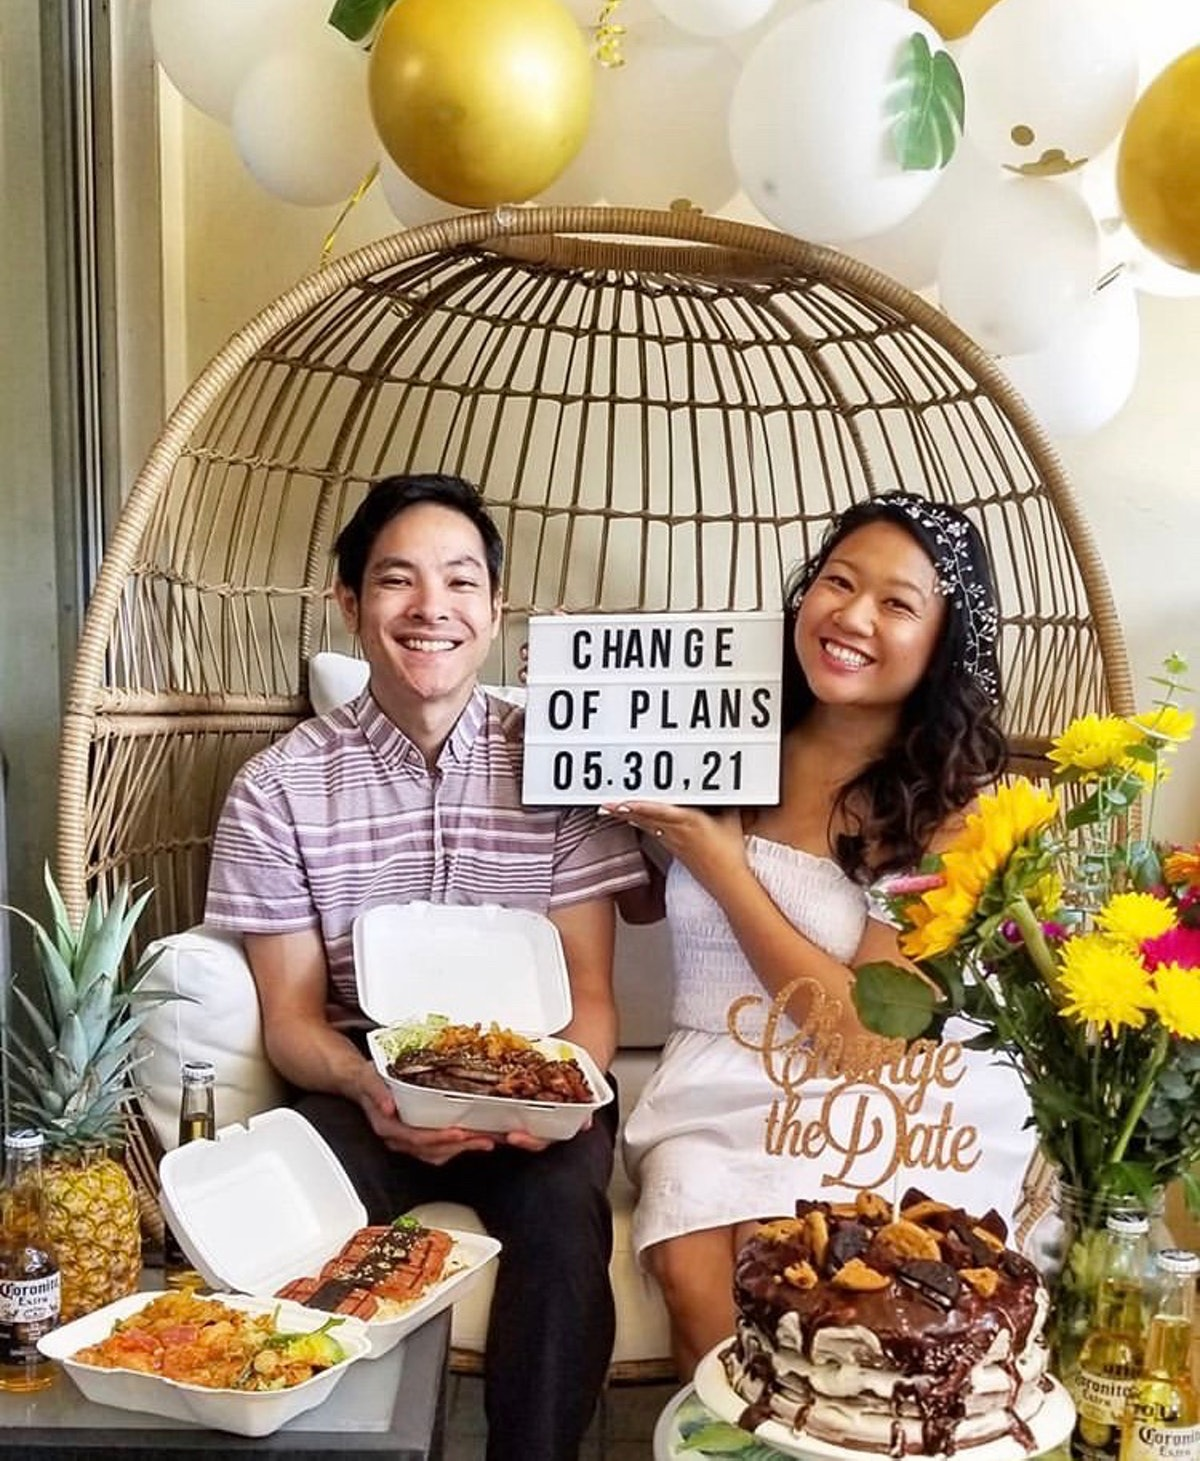 A happy couple announces their new wedding date with a cake, food, and drinks over Zoom.